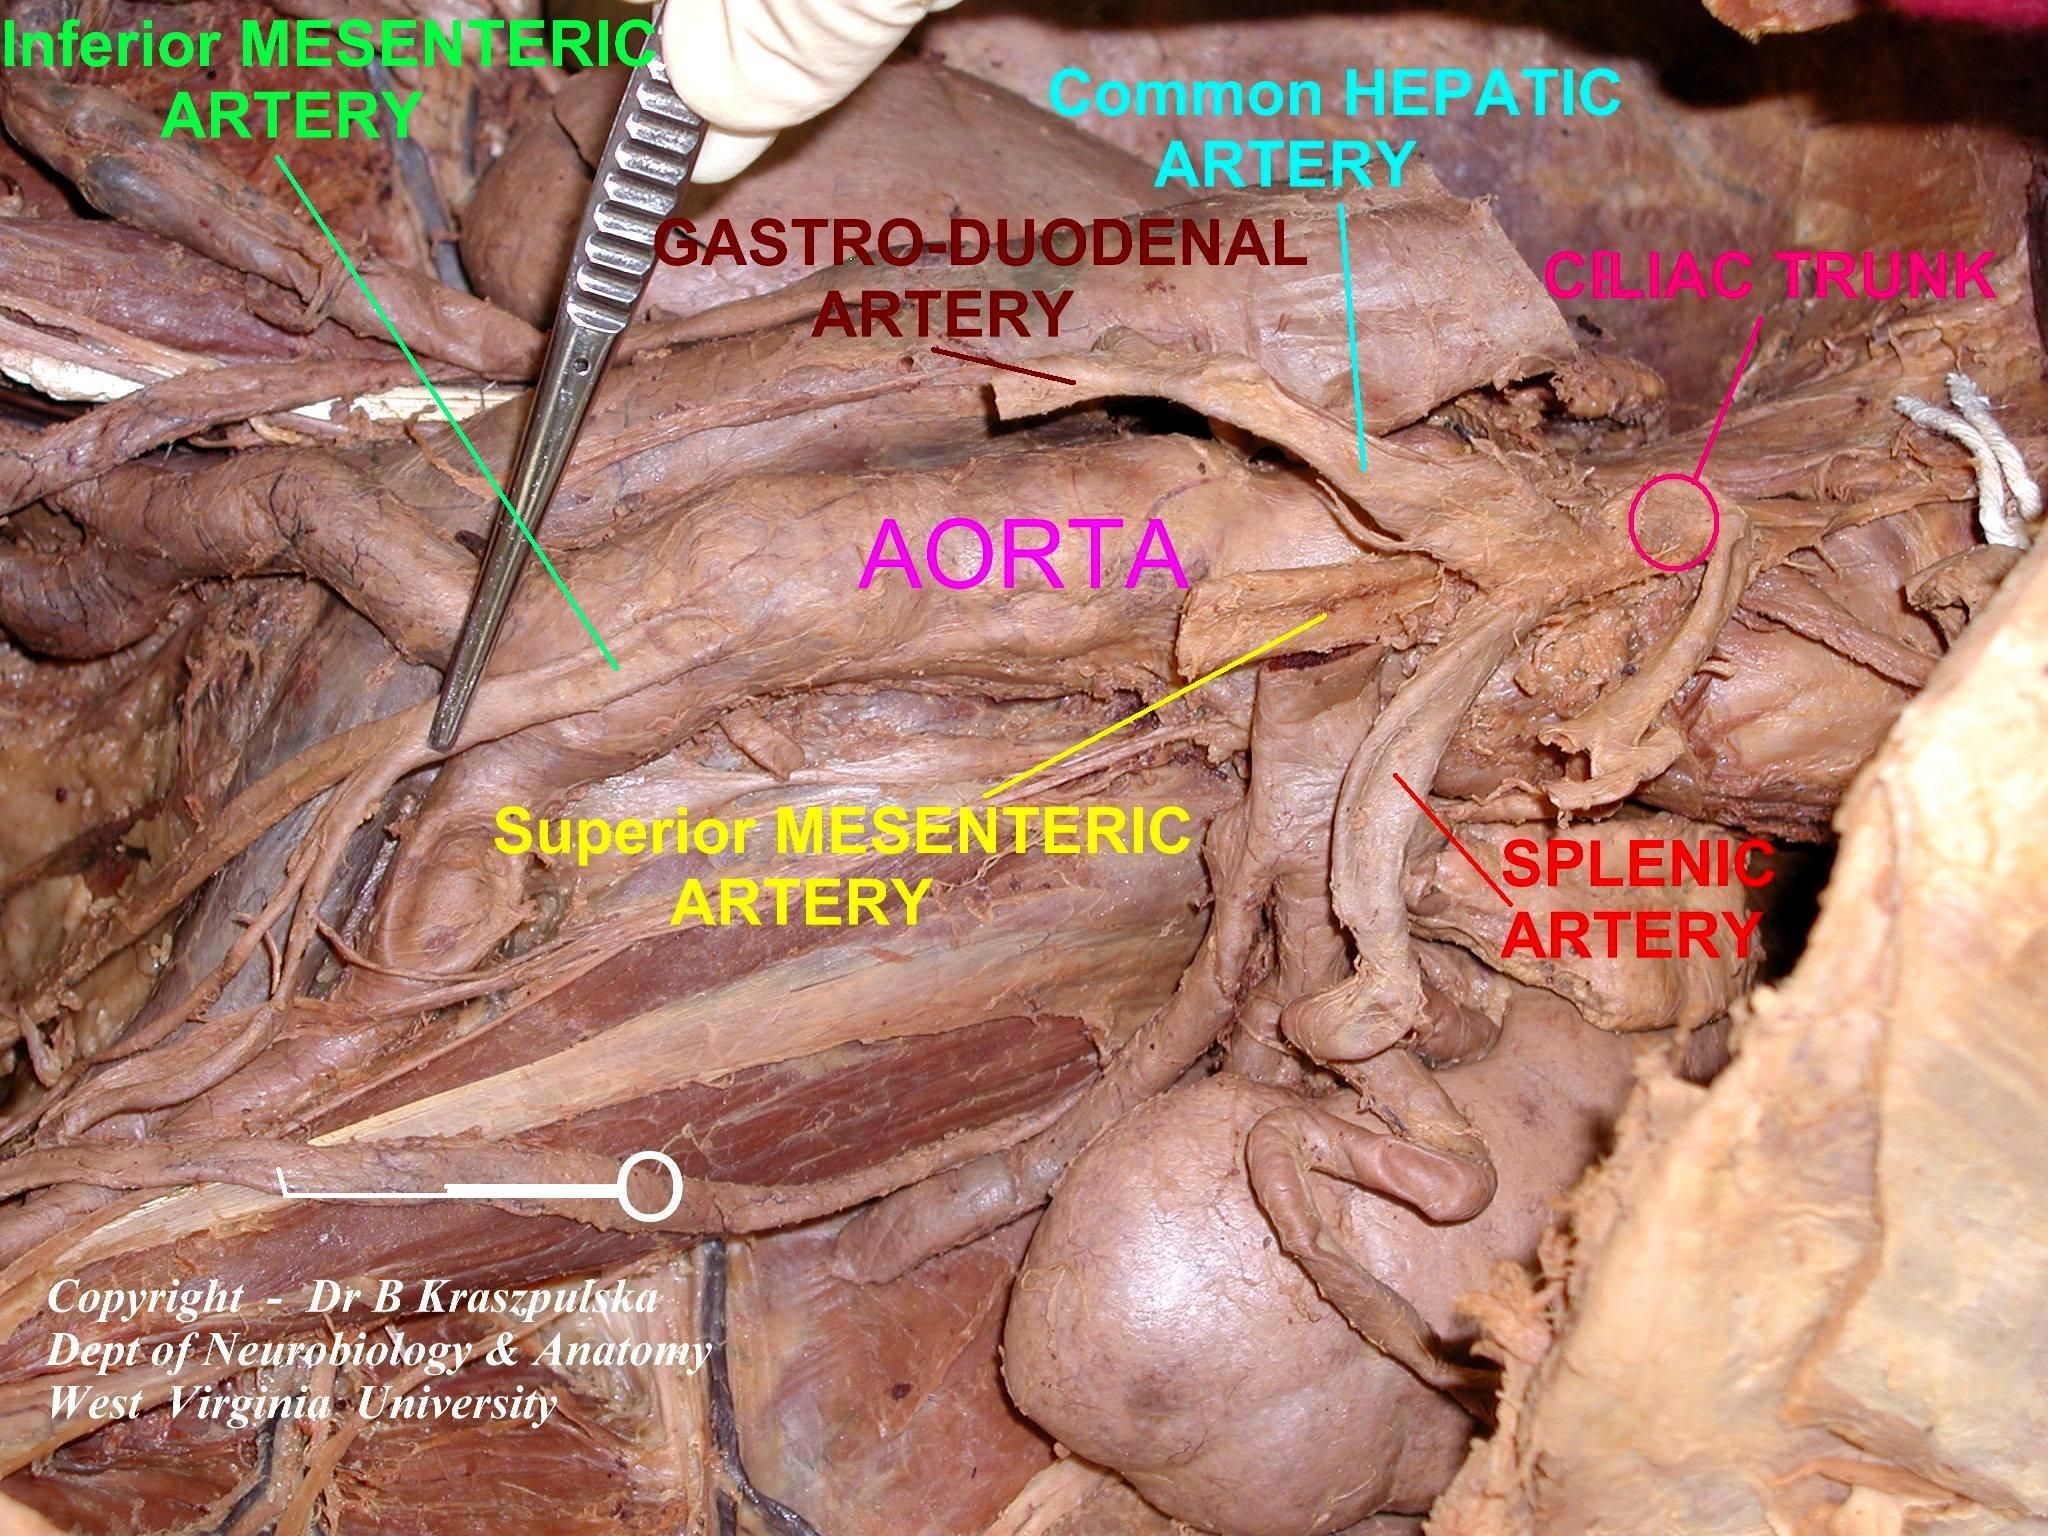 Inferior Mesenteric Artery Cadaver Google Search Final Tag Exam